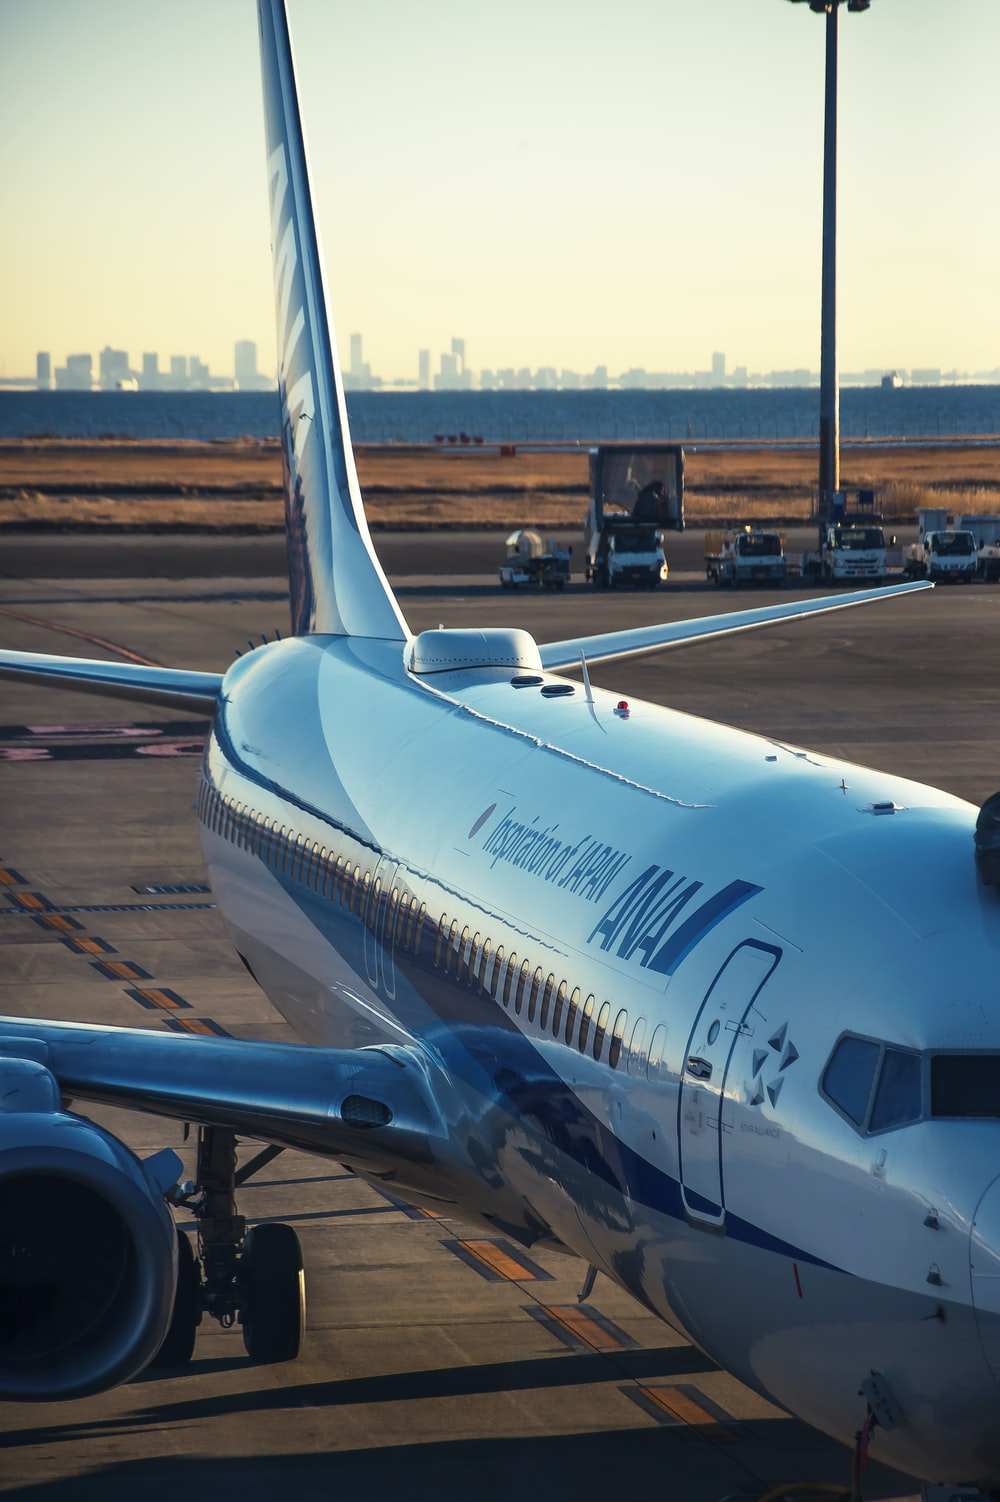 white and blue airplane on airport during daytime